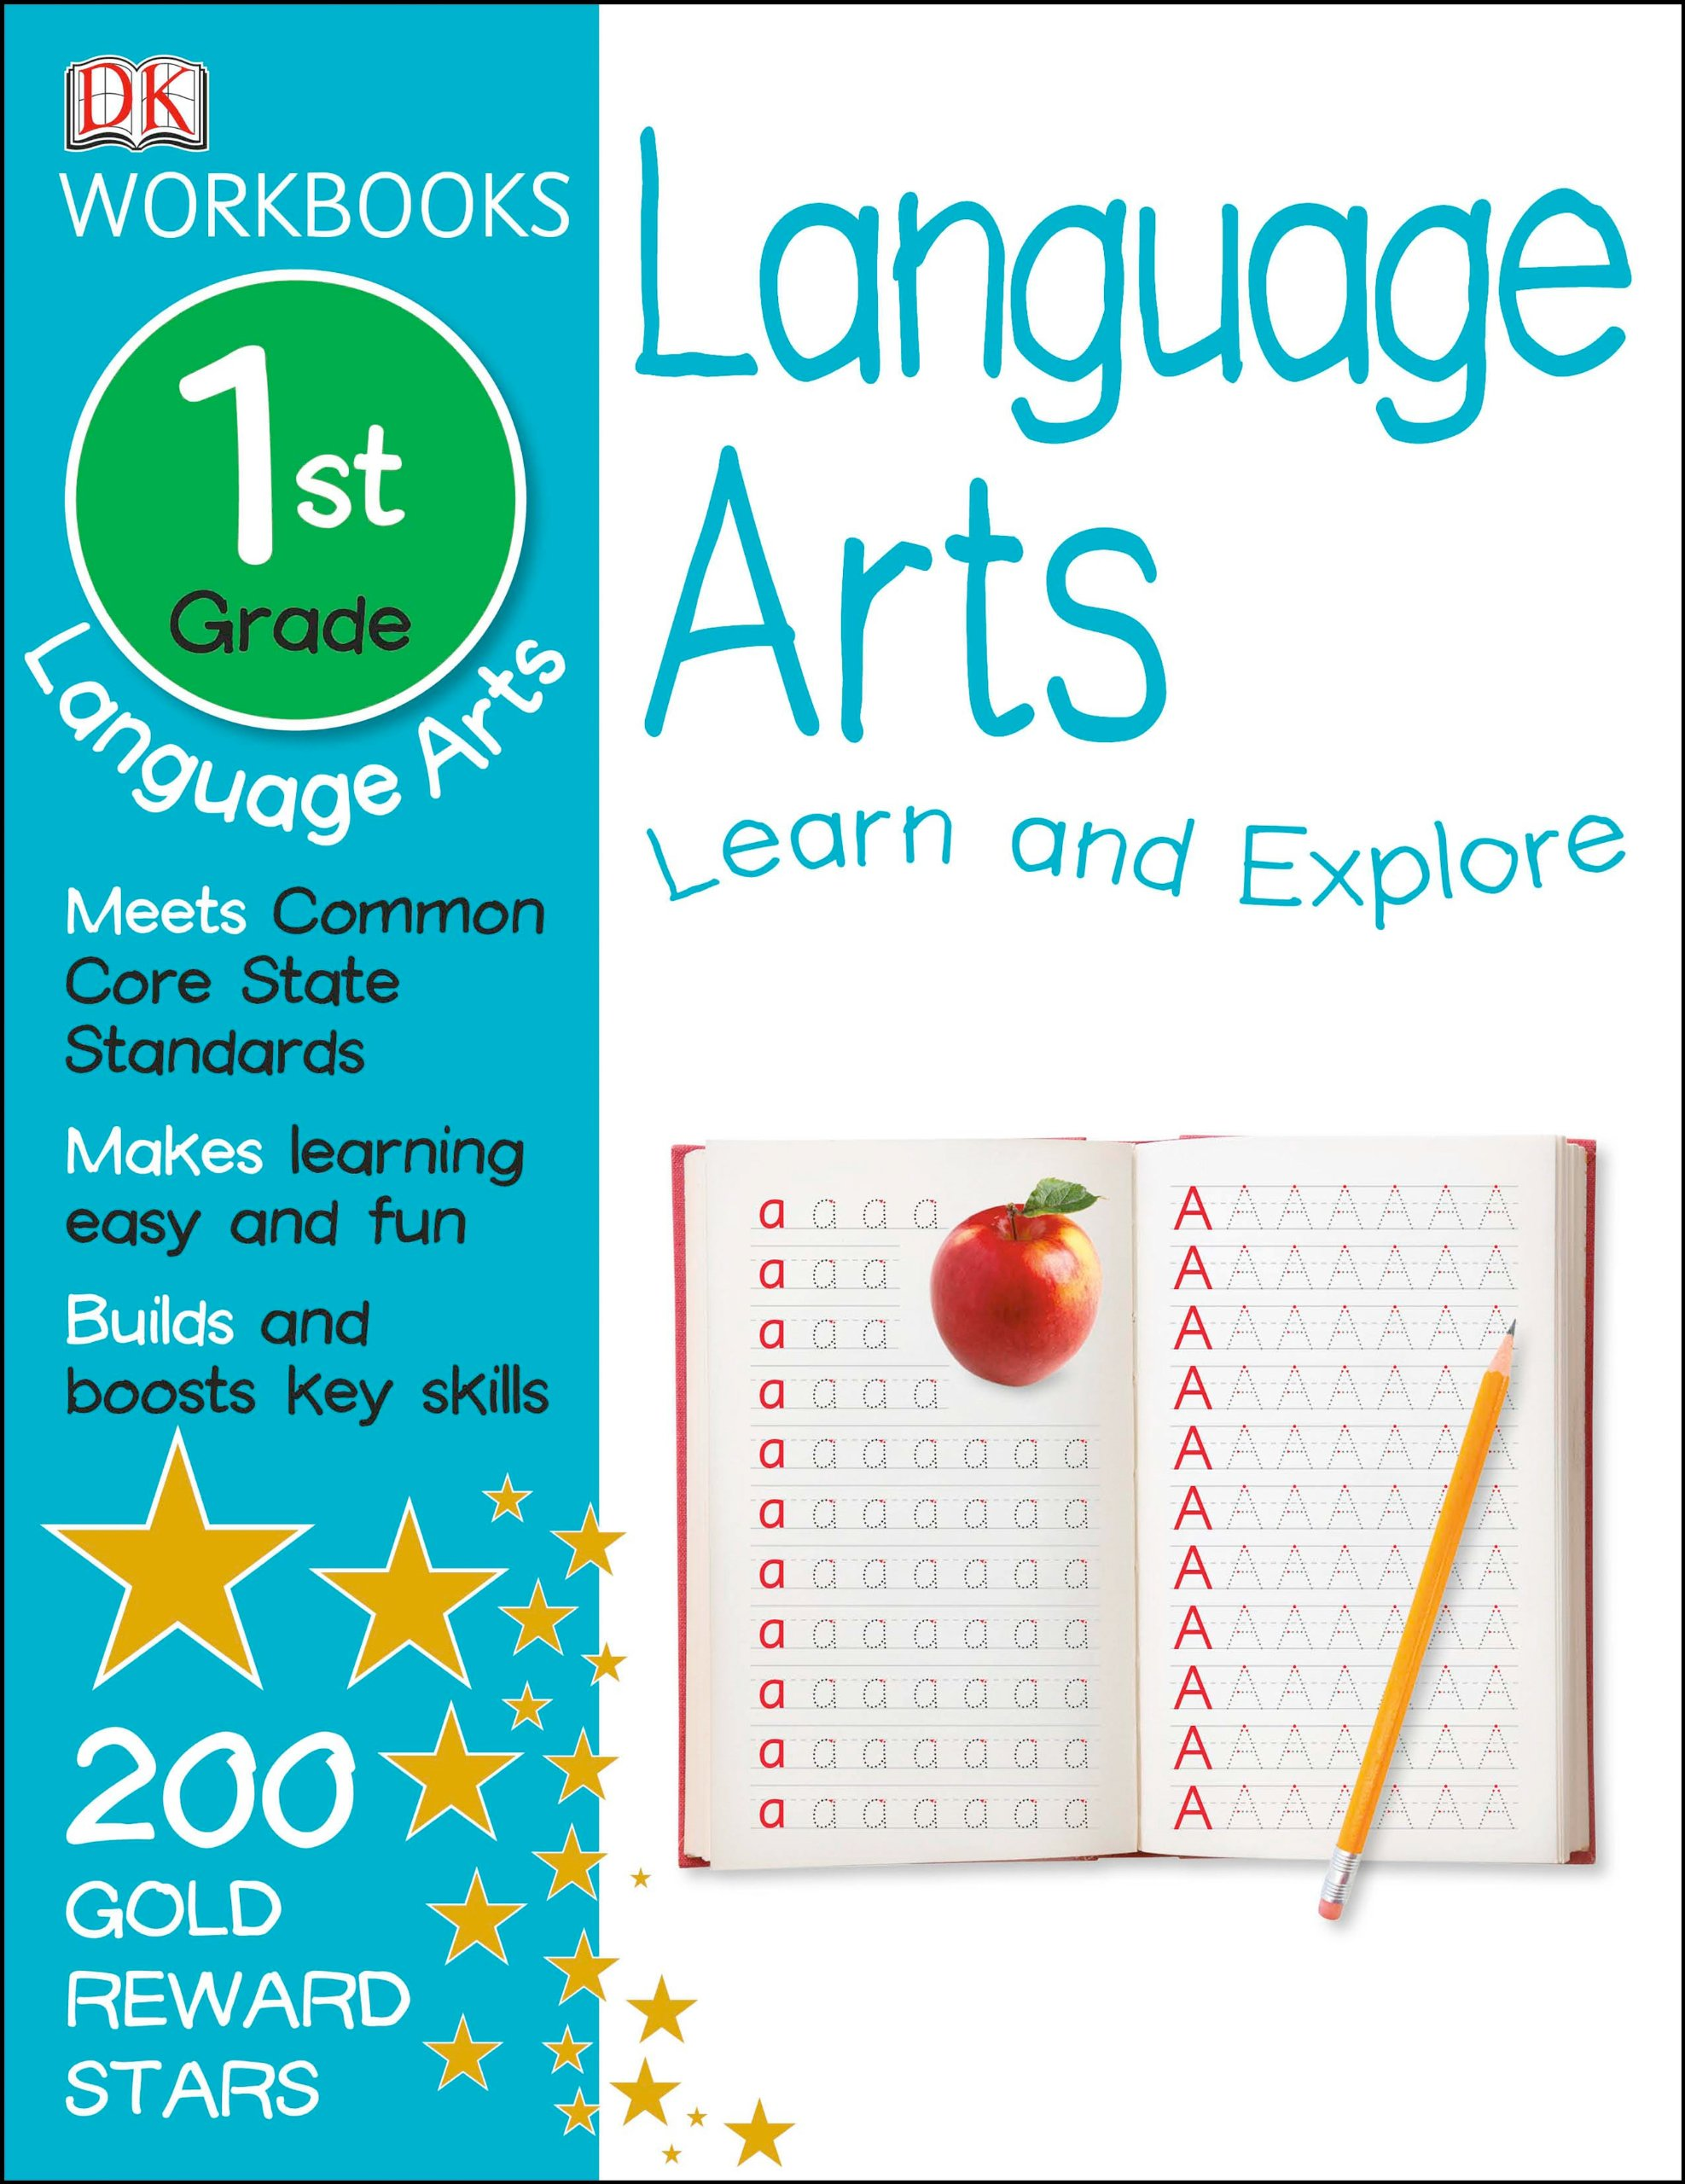 Worksheet First Grade Workbooks dk workbooks language arts first grade publishing 9781465417381 amazon com books